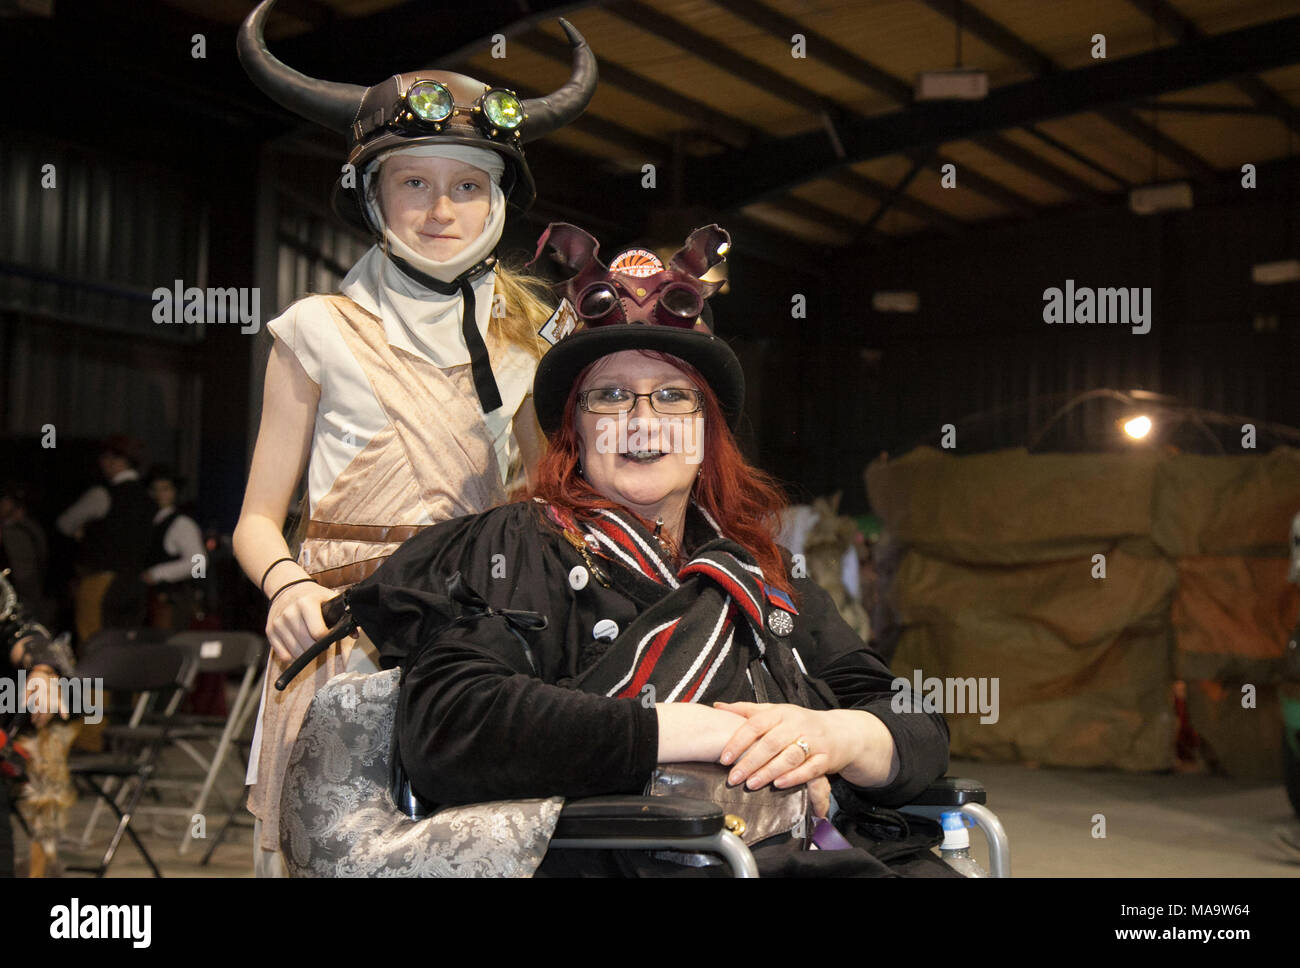 Manchester, UK 31th March 2018.  The Dawson family at the Post apocalyptic Weekend at the Asylum, the Planet's largest steampunk festival where a City becomes Wasteland Costumes Capital for four days. The Victorian Steam punk Society, teamed up with Manchester's Bowlers Exhibition Centre and the organisers of For the Love of Sci Fi to create a Cosplay Expo. Credit: MediaWorldImages/AlamyLiveNews - Stock Image